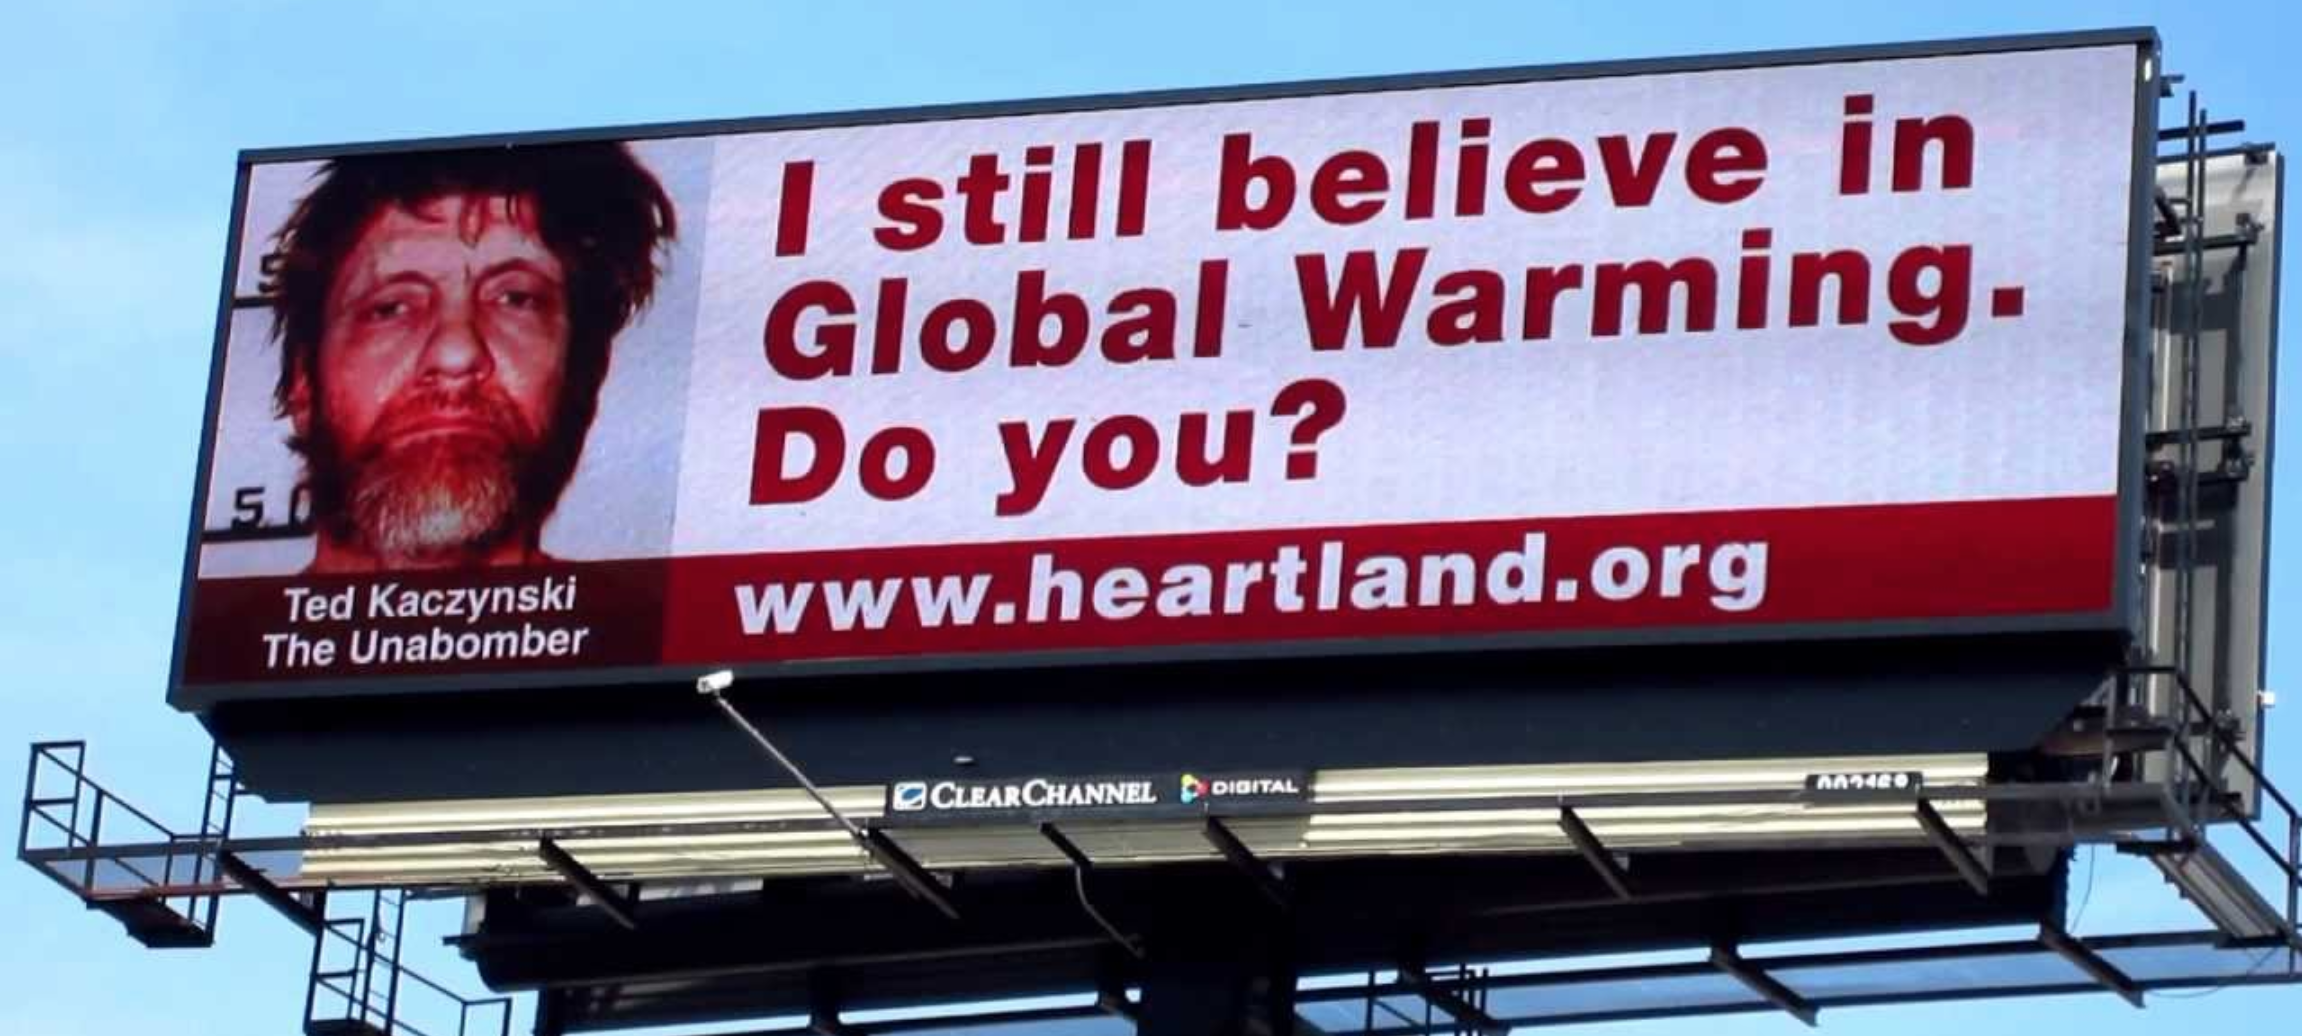 Heartland Institute climate skeptic Billboard